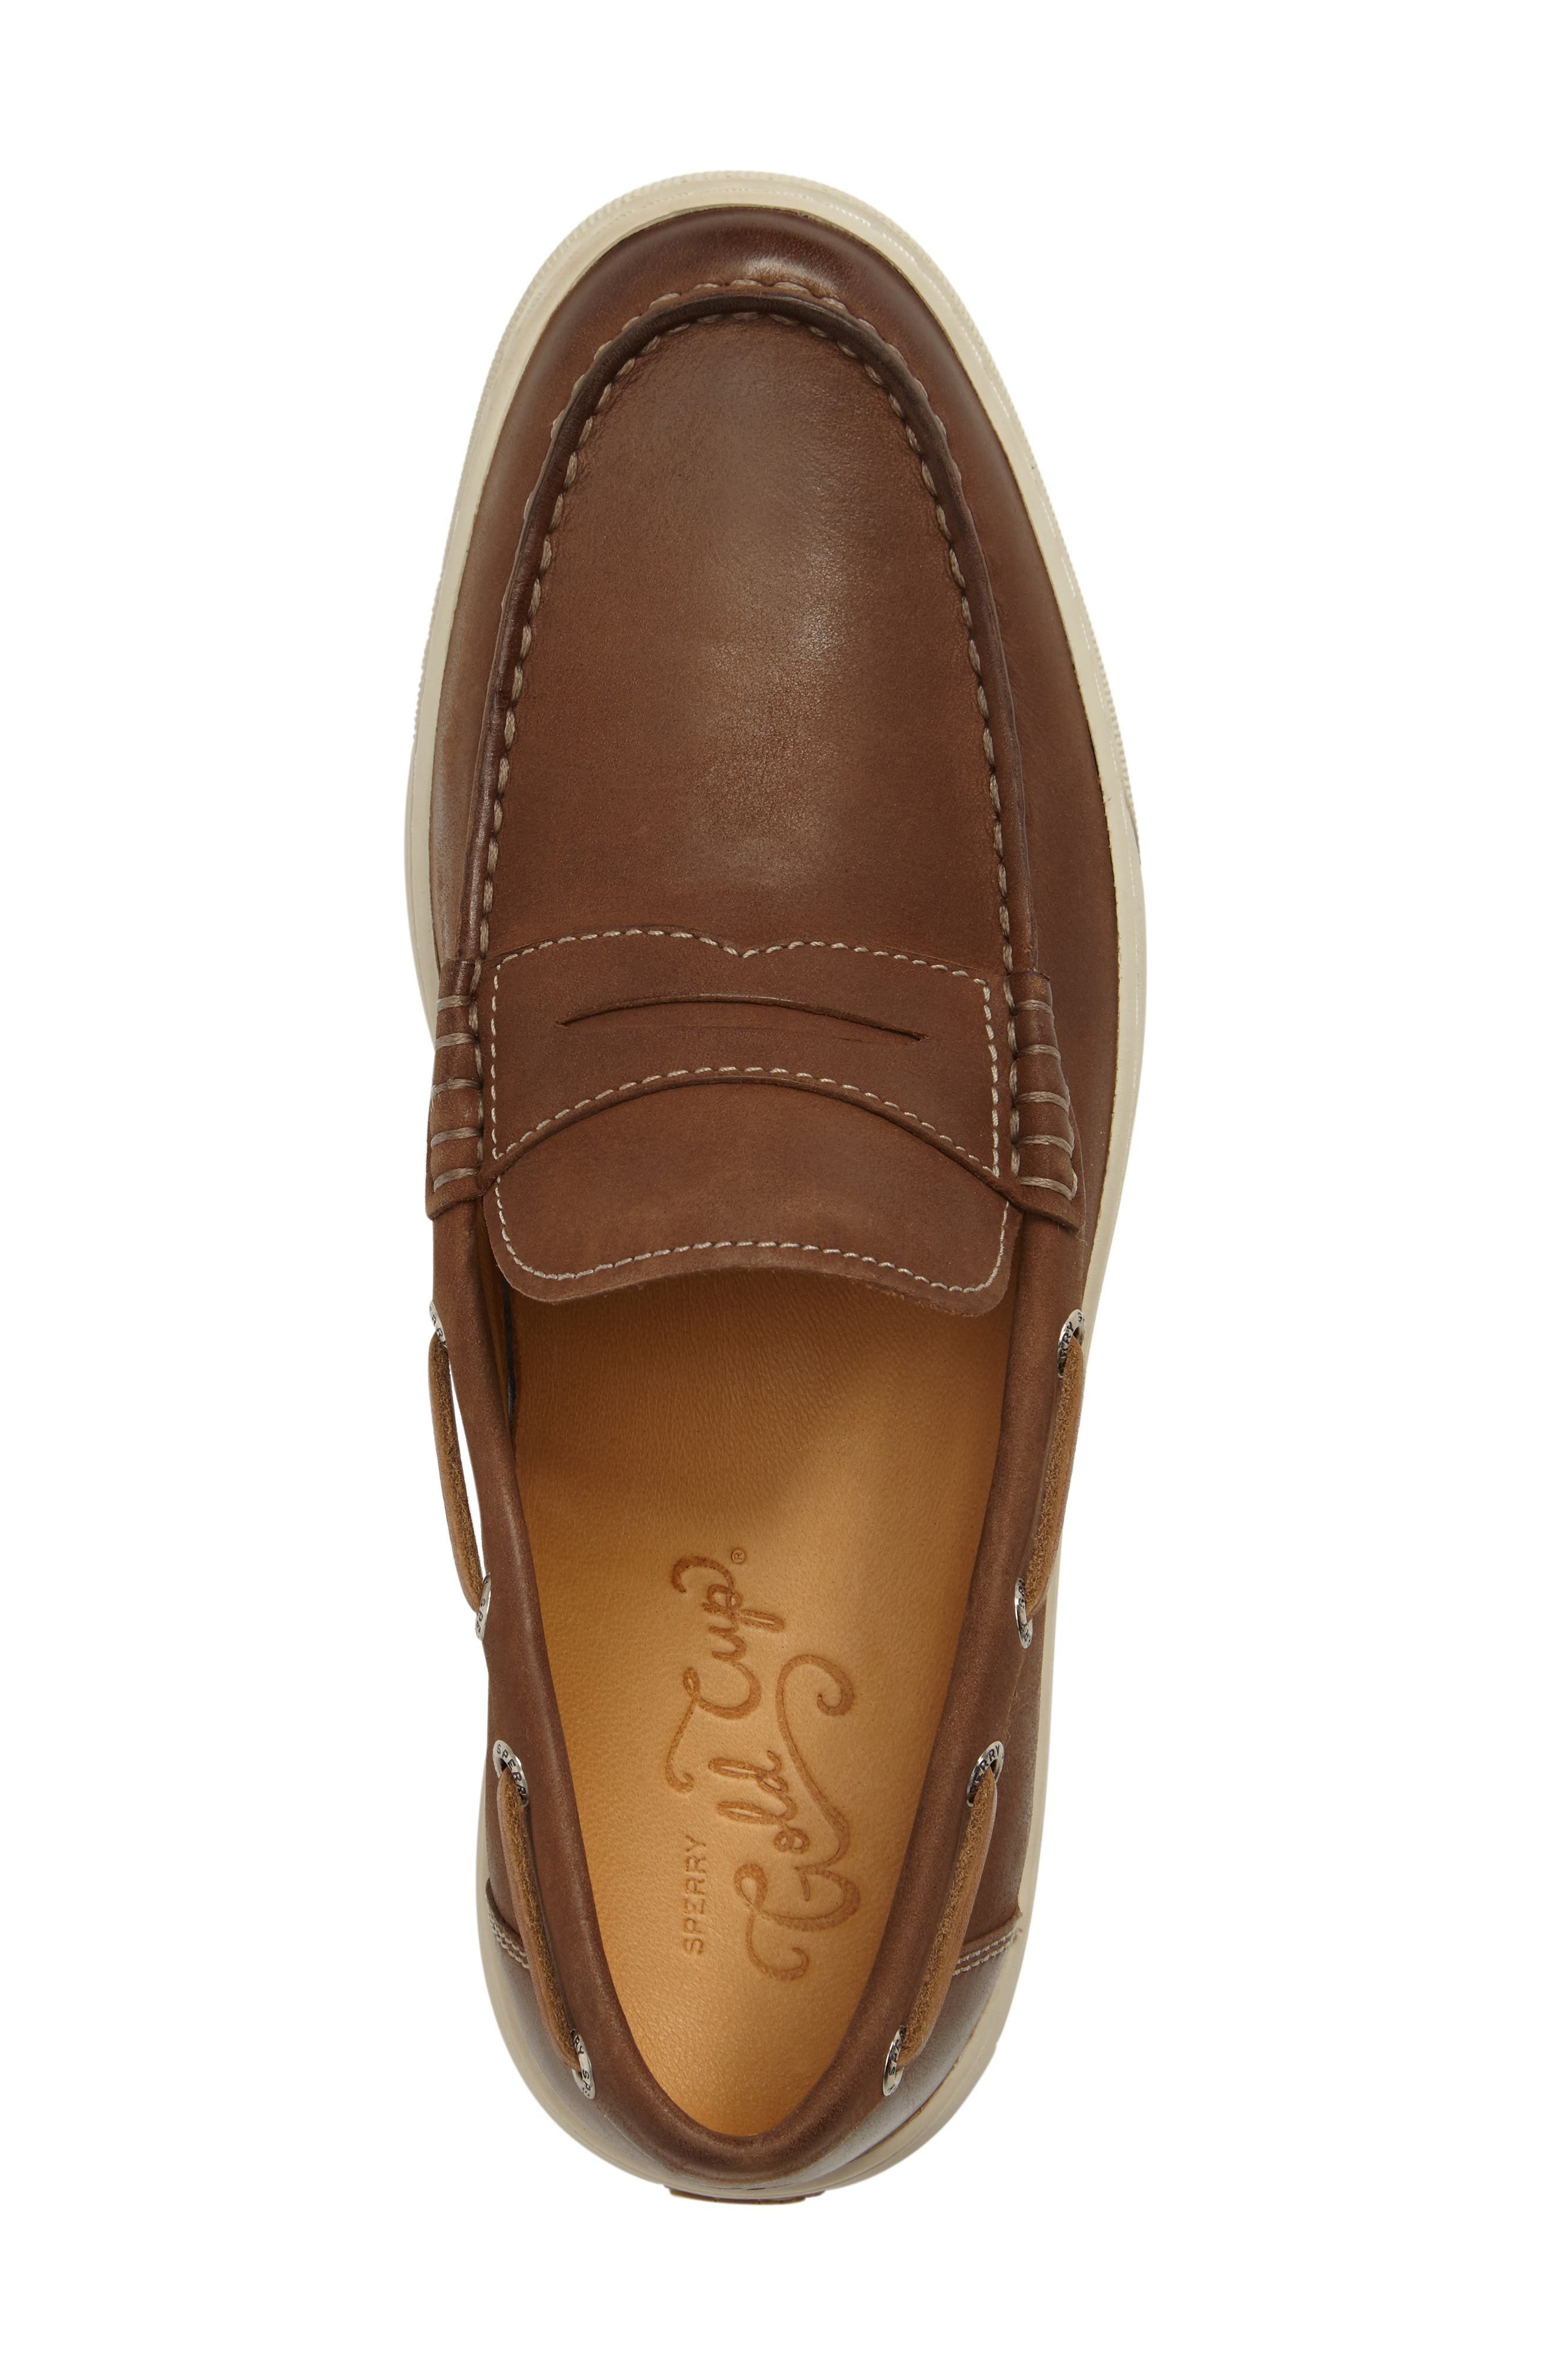 Gold Cup Penny Loafer,                             Alternate thumbnail 10, color,